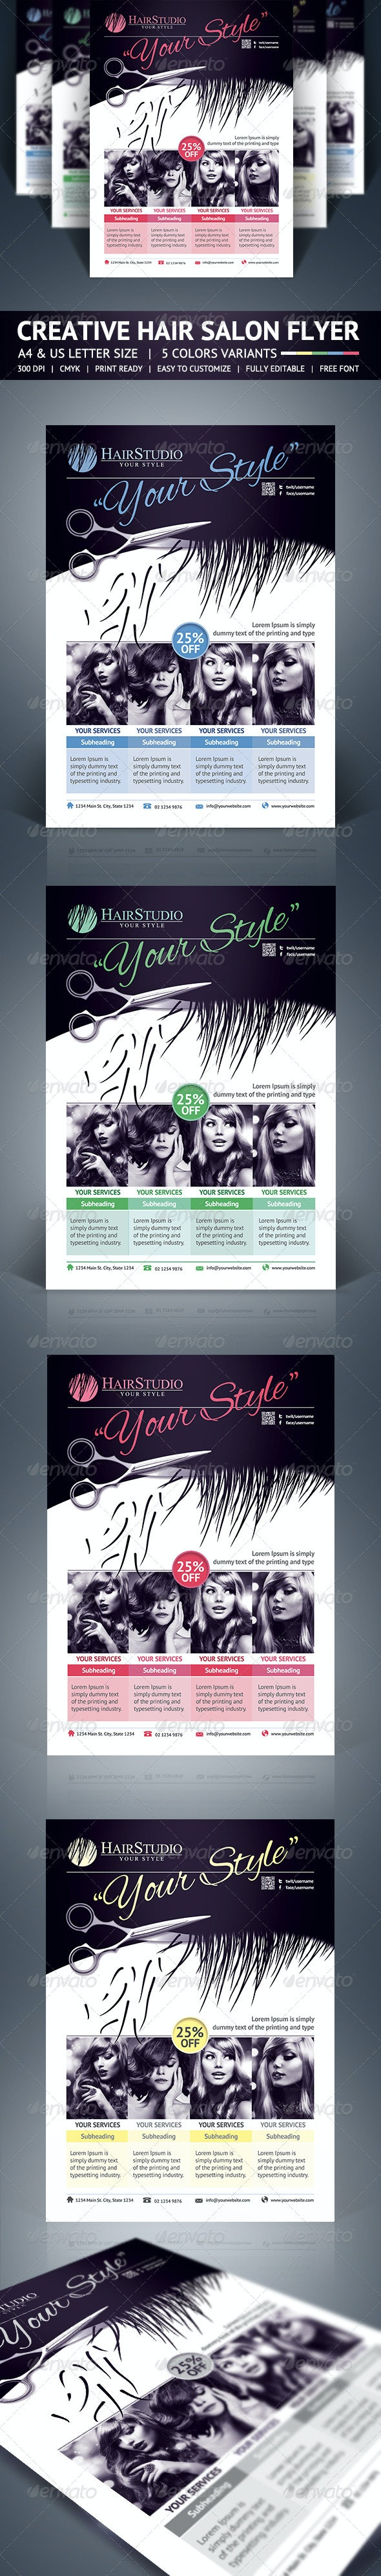 Hair Salon Flyer - Corporate Flyers